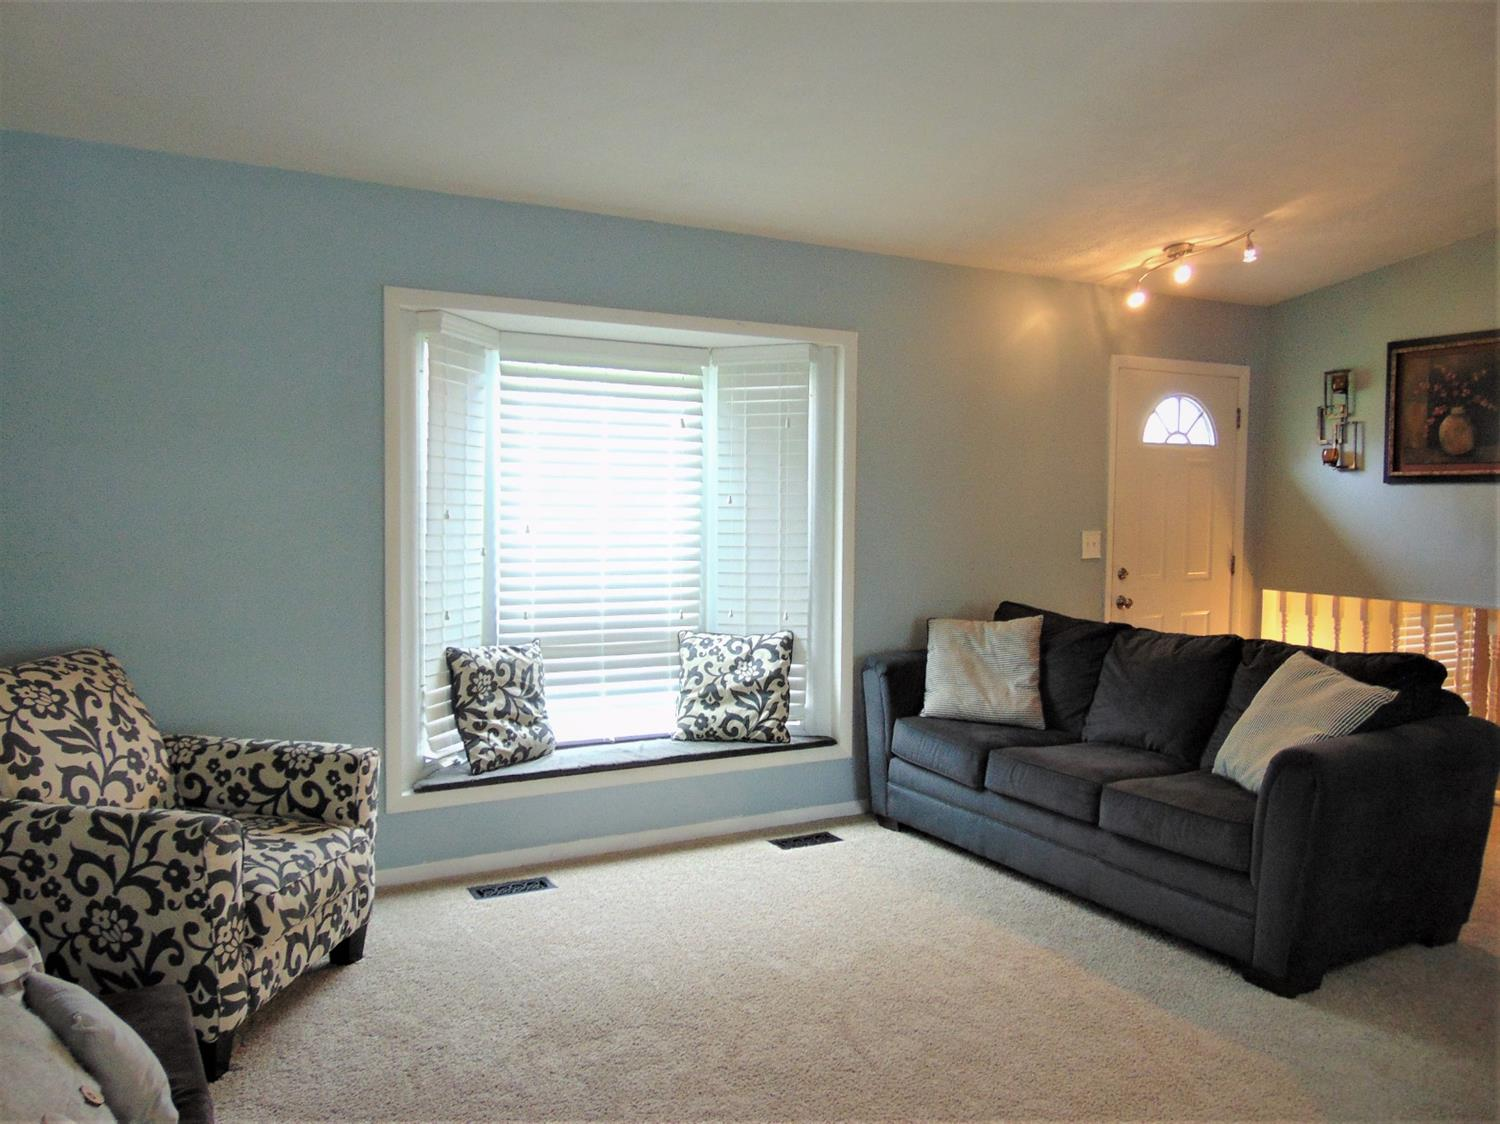 Photo 2 for 5546 Highfield Ct West Chester - West, OH 45069